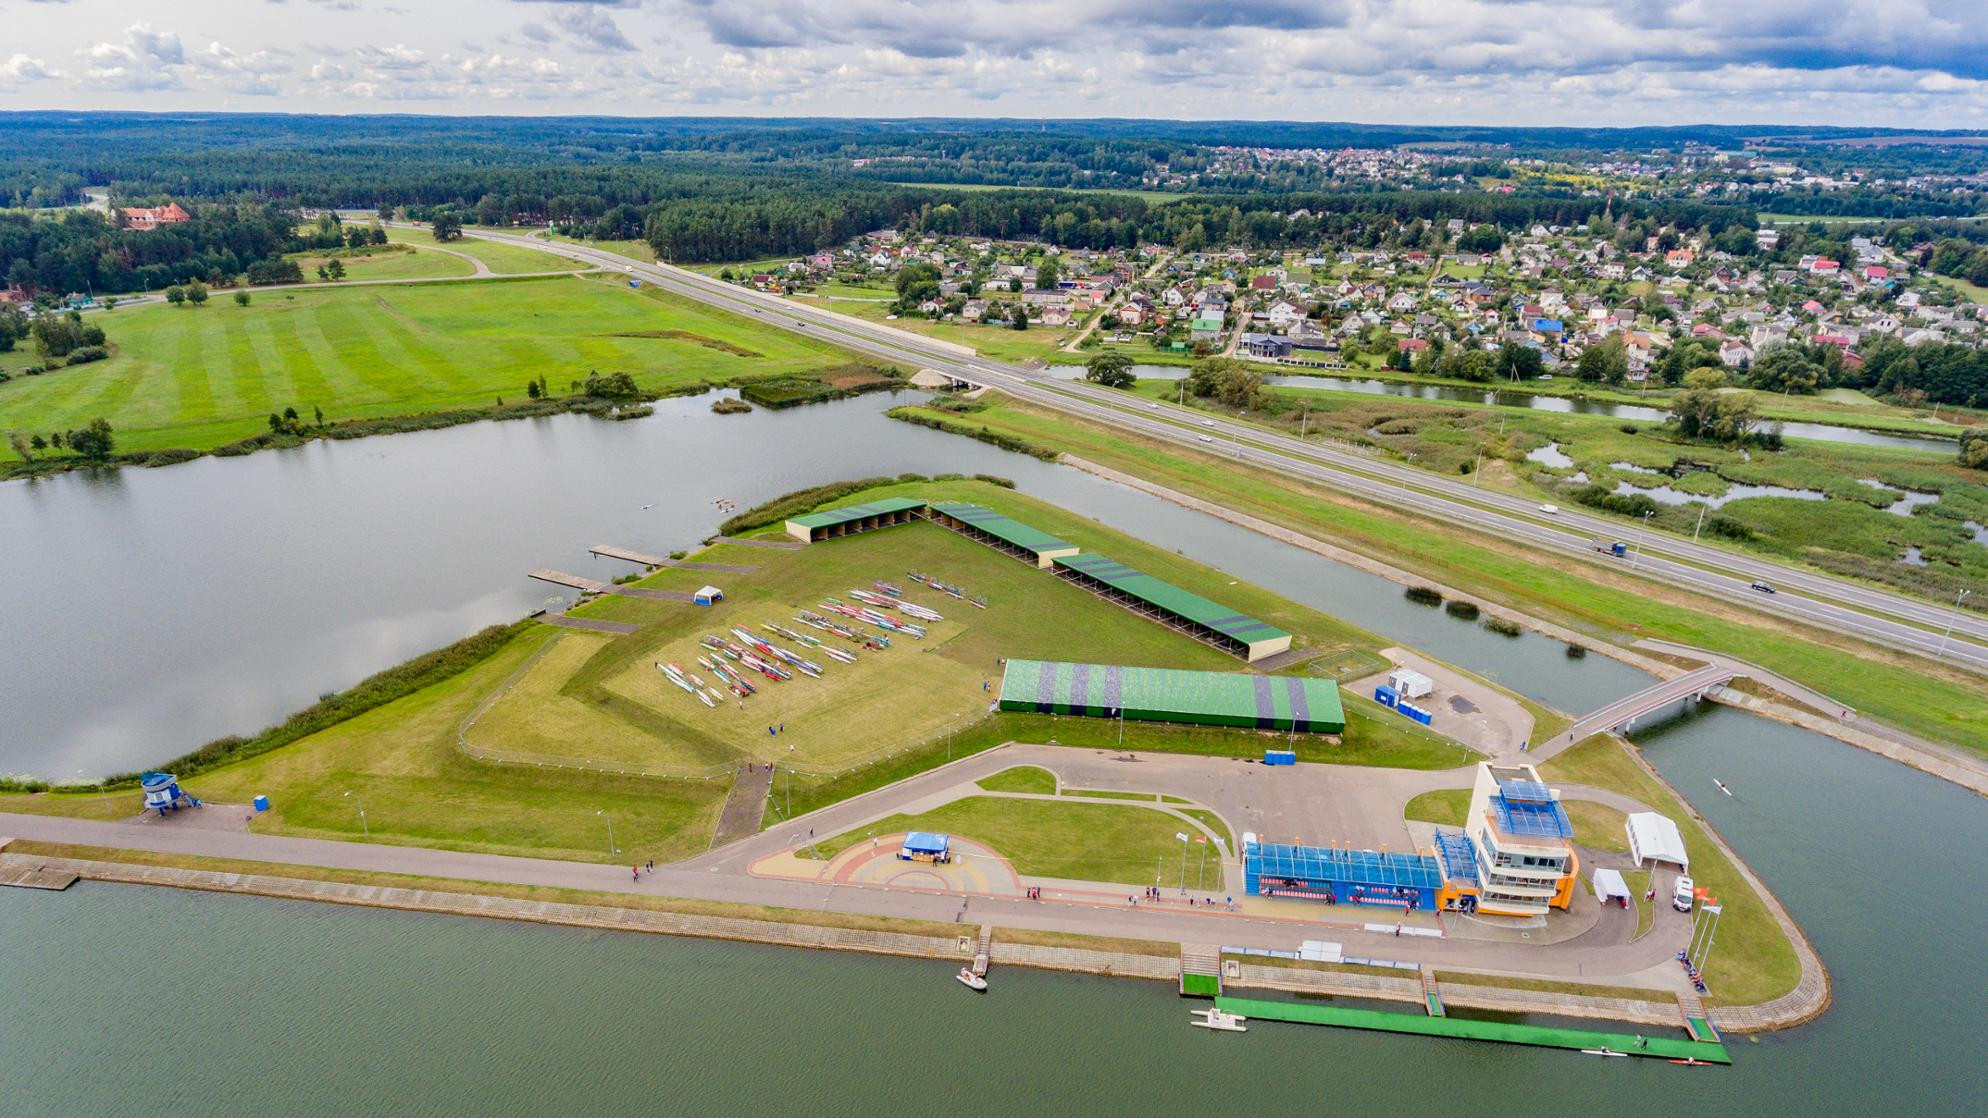 Zaslavl Regatta Course